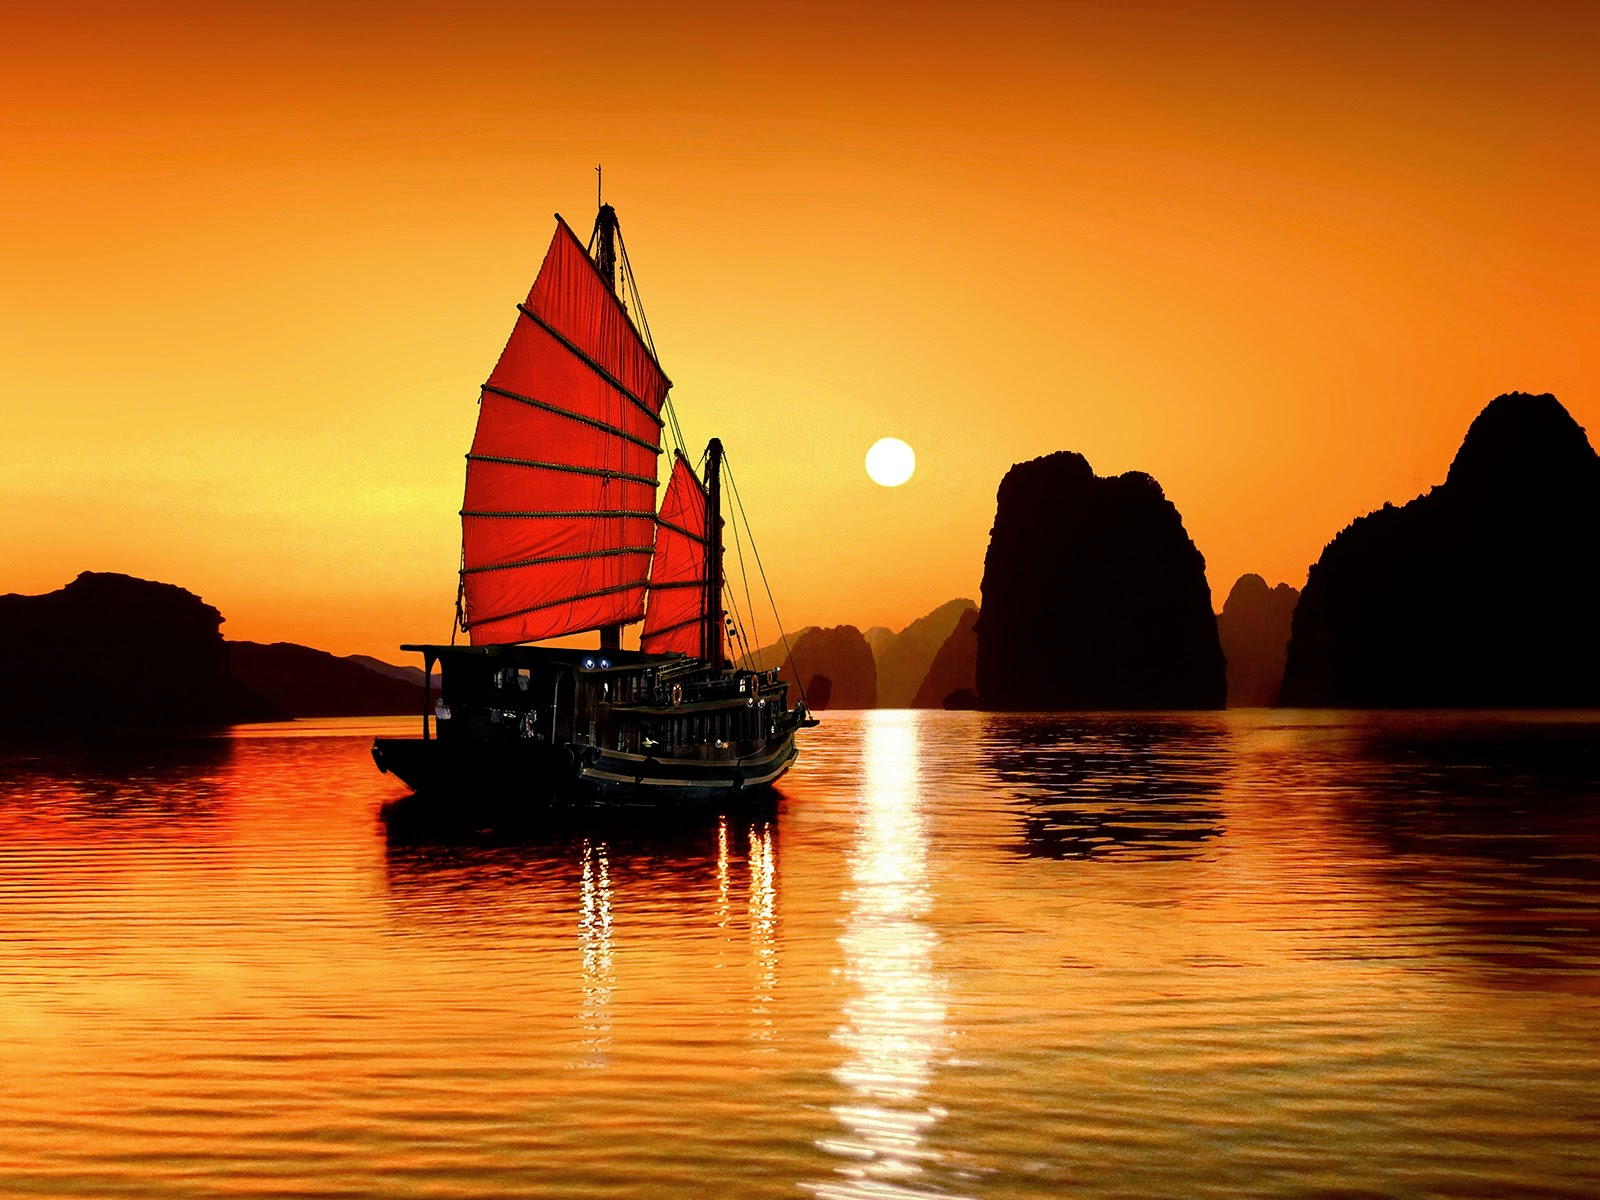 Halong_Bay_dolphin_cruise_tour_-_3_days_2_nights_05